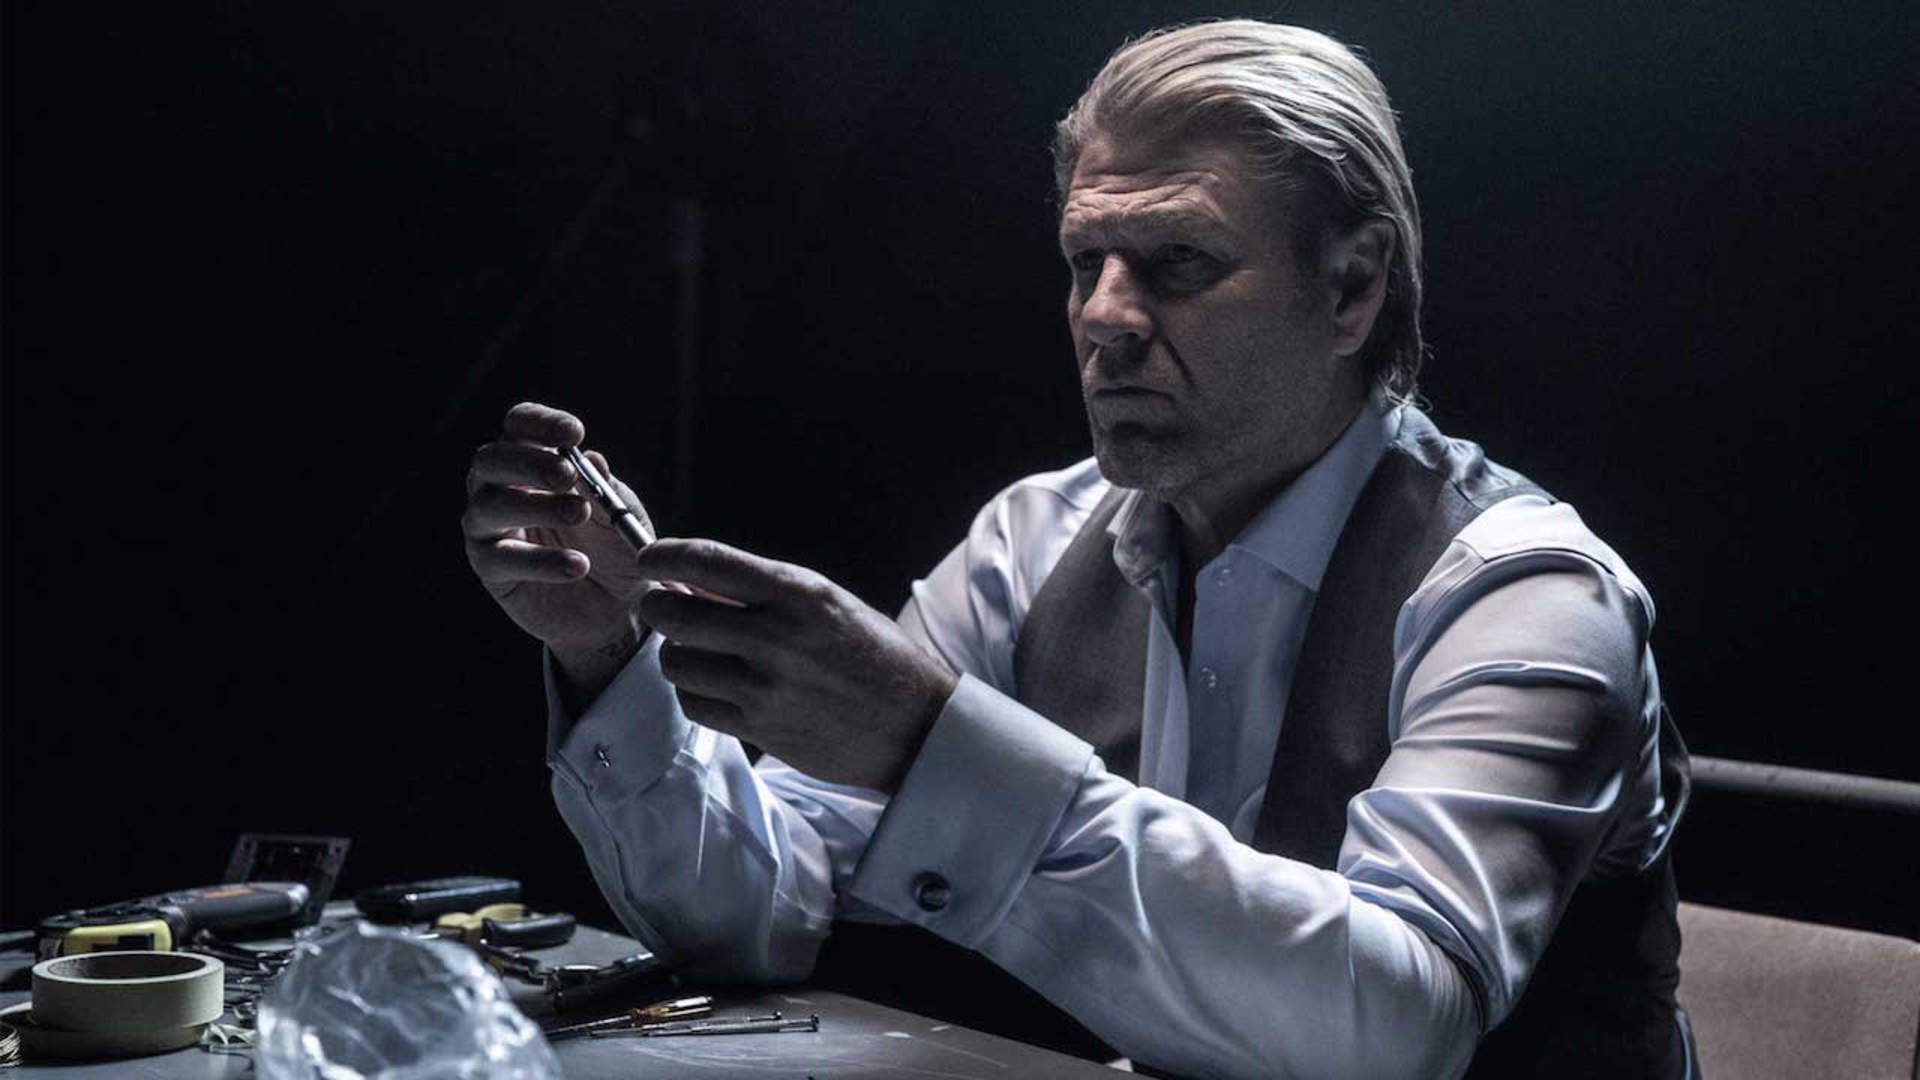 Hitman 2's Providing One other Likelihood to Take Out Sean Bean Later This Month